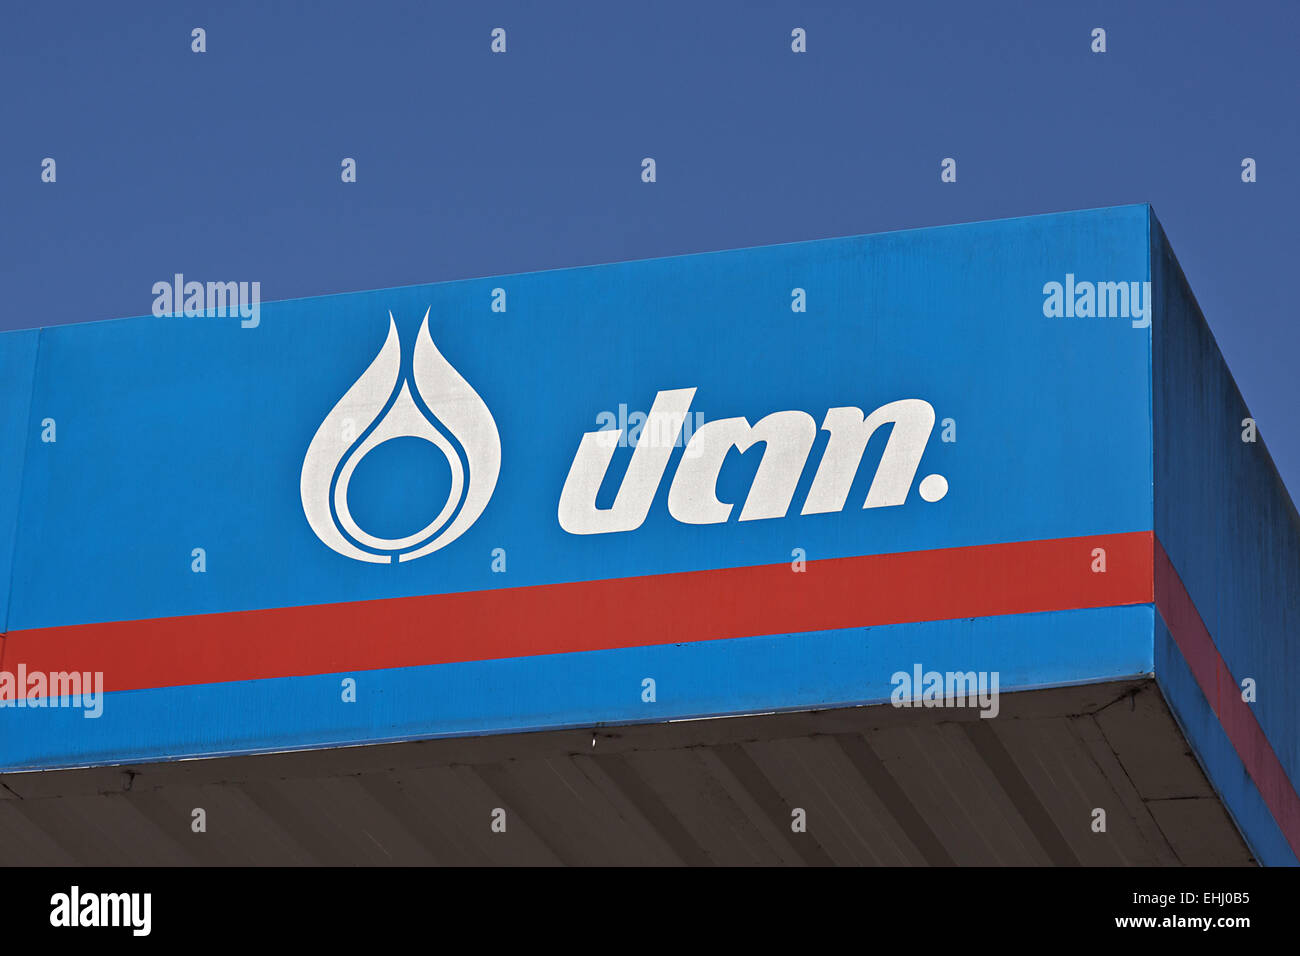 Gulf Oil Company Stock Photos Gulf Oil Company Stock Images Alamy